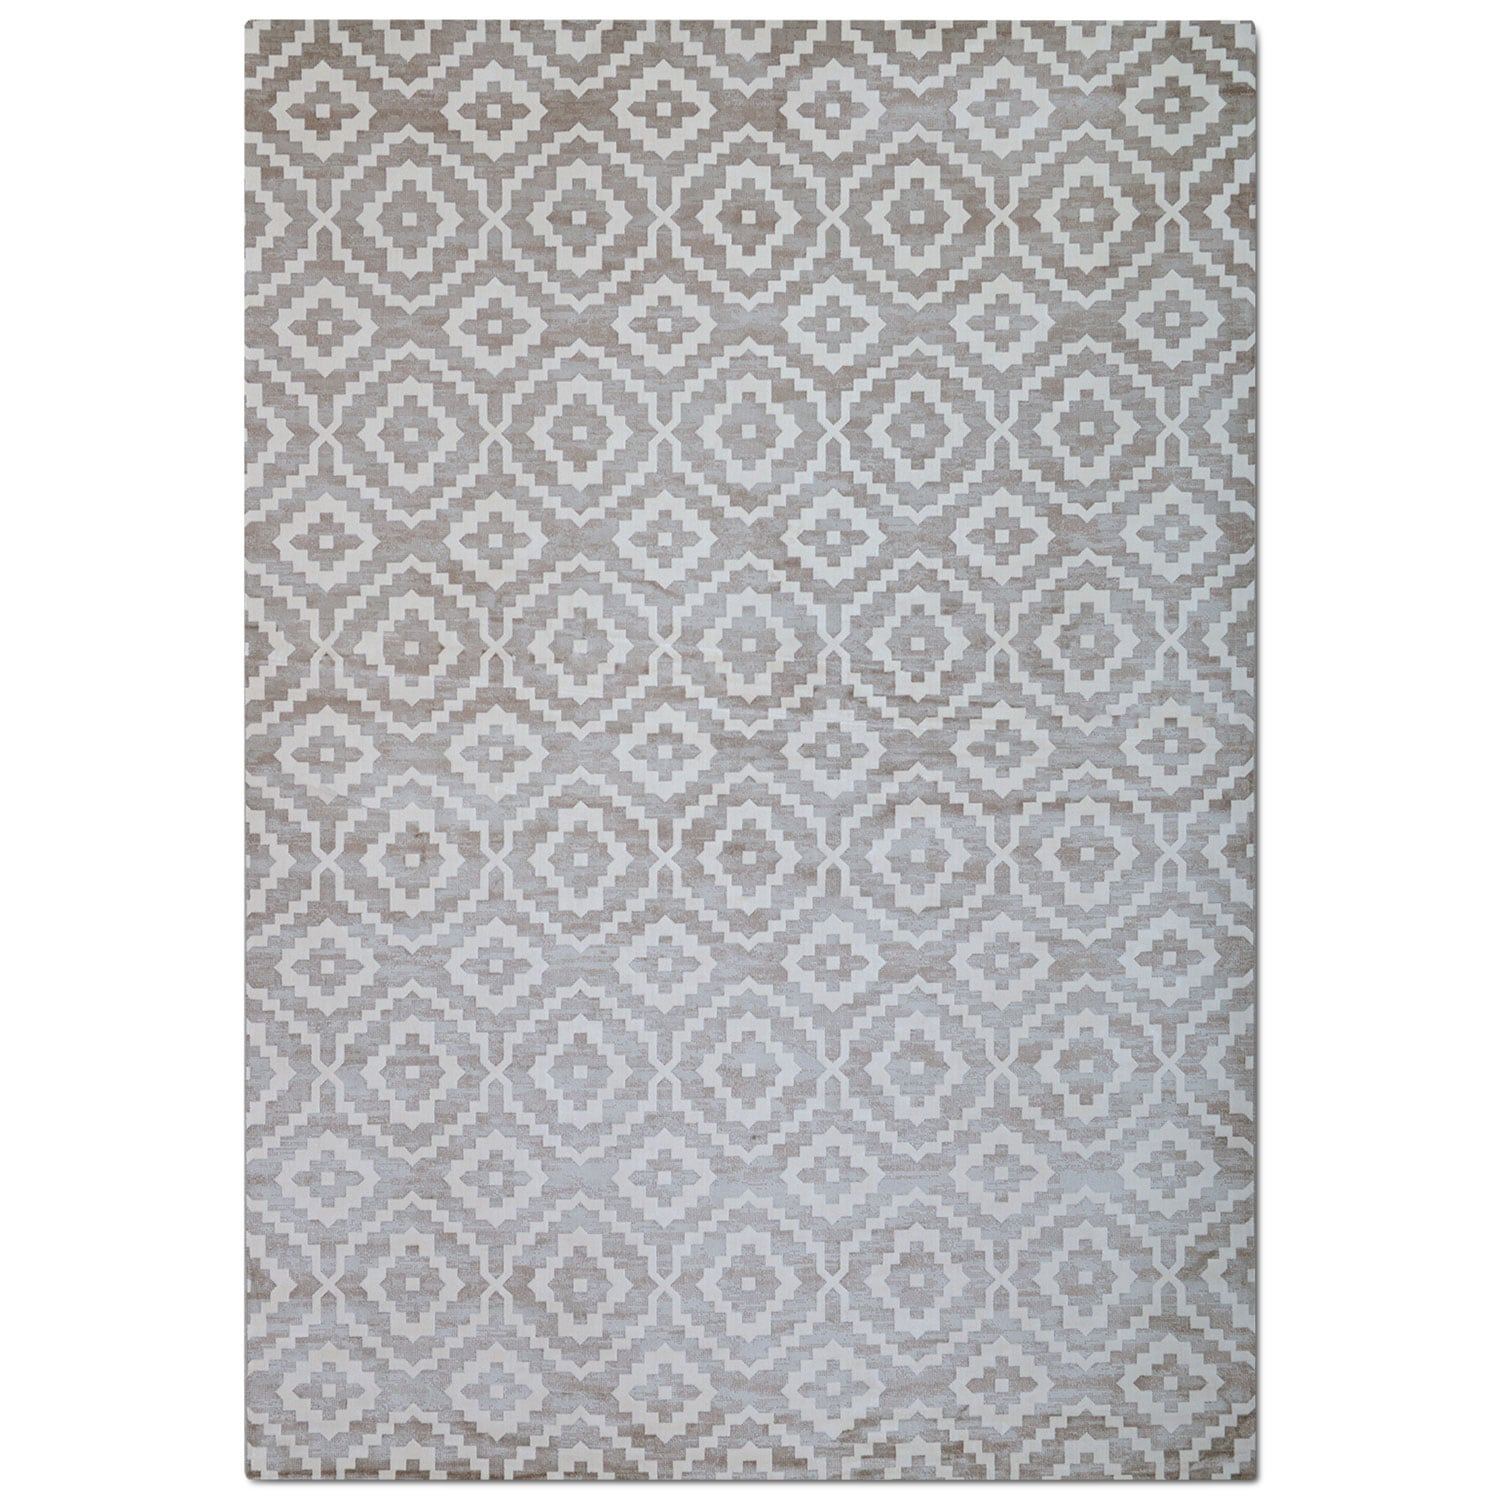 Rugs - Sonoma 8' x 10' Area Rug - Silver